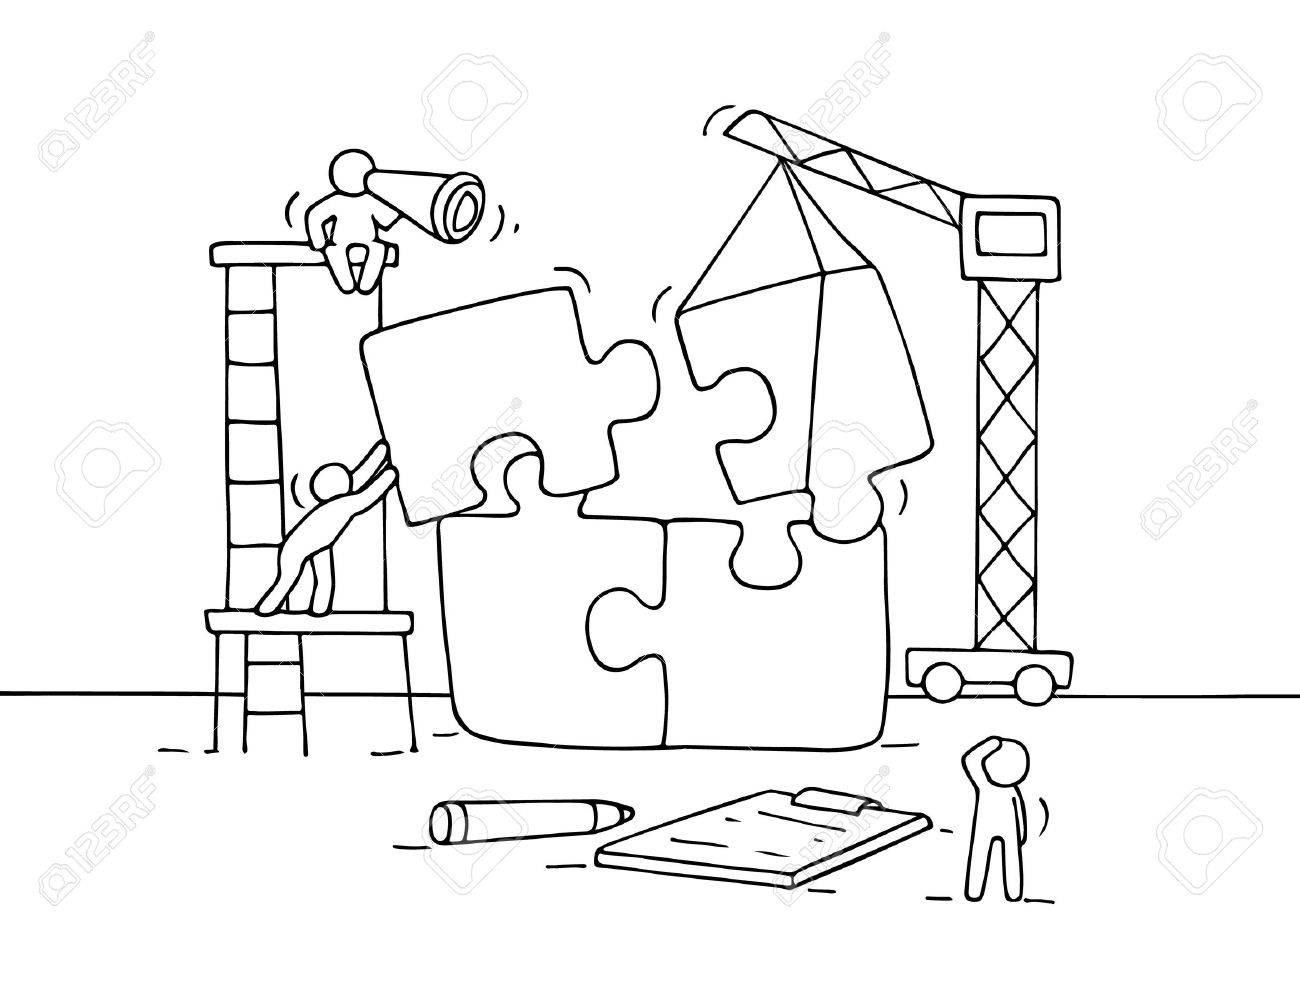 Puzzle Pieces Drawing At Getdrawings